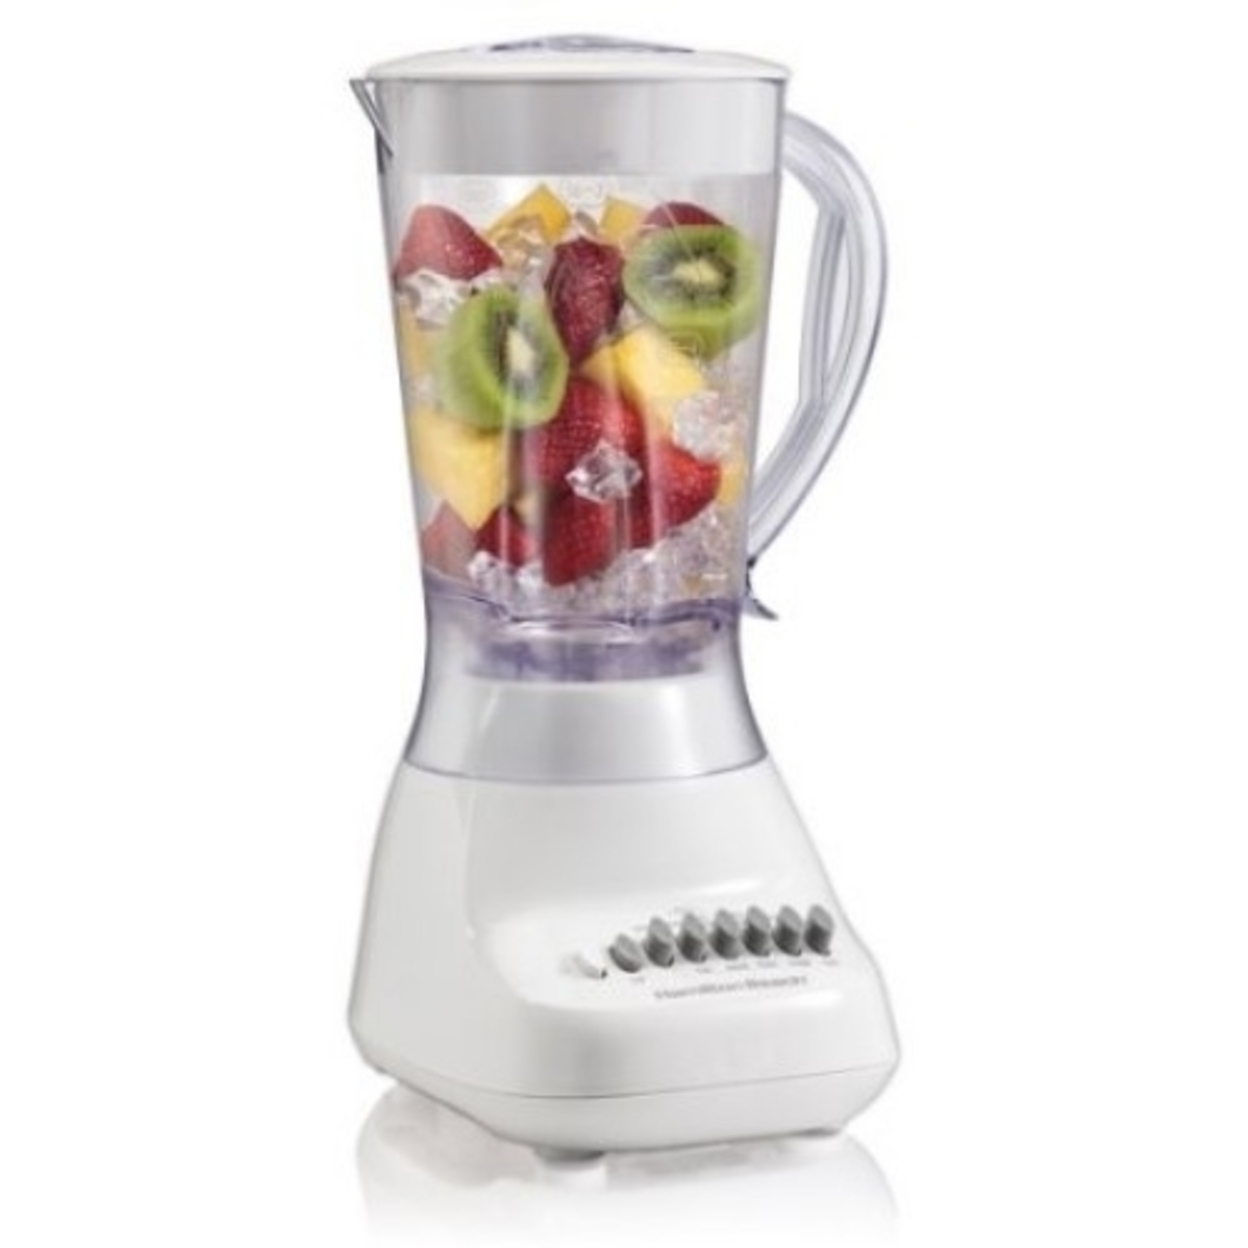 Hamilton Beach Brands 219839 50166 10Spd 400W Wht Blender 5a4021c8e224610be53c72e4